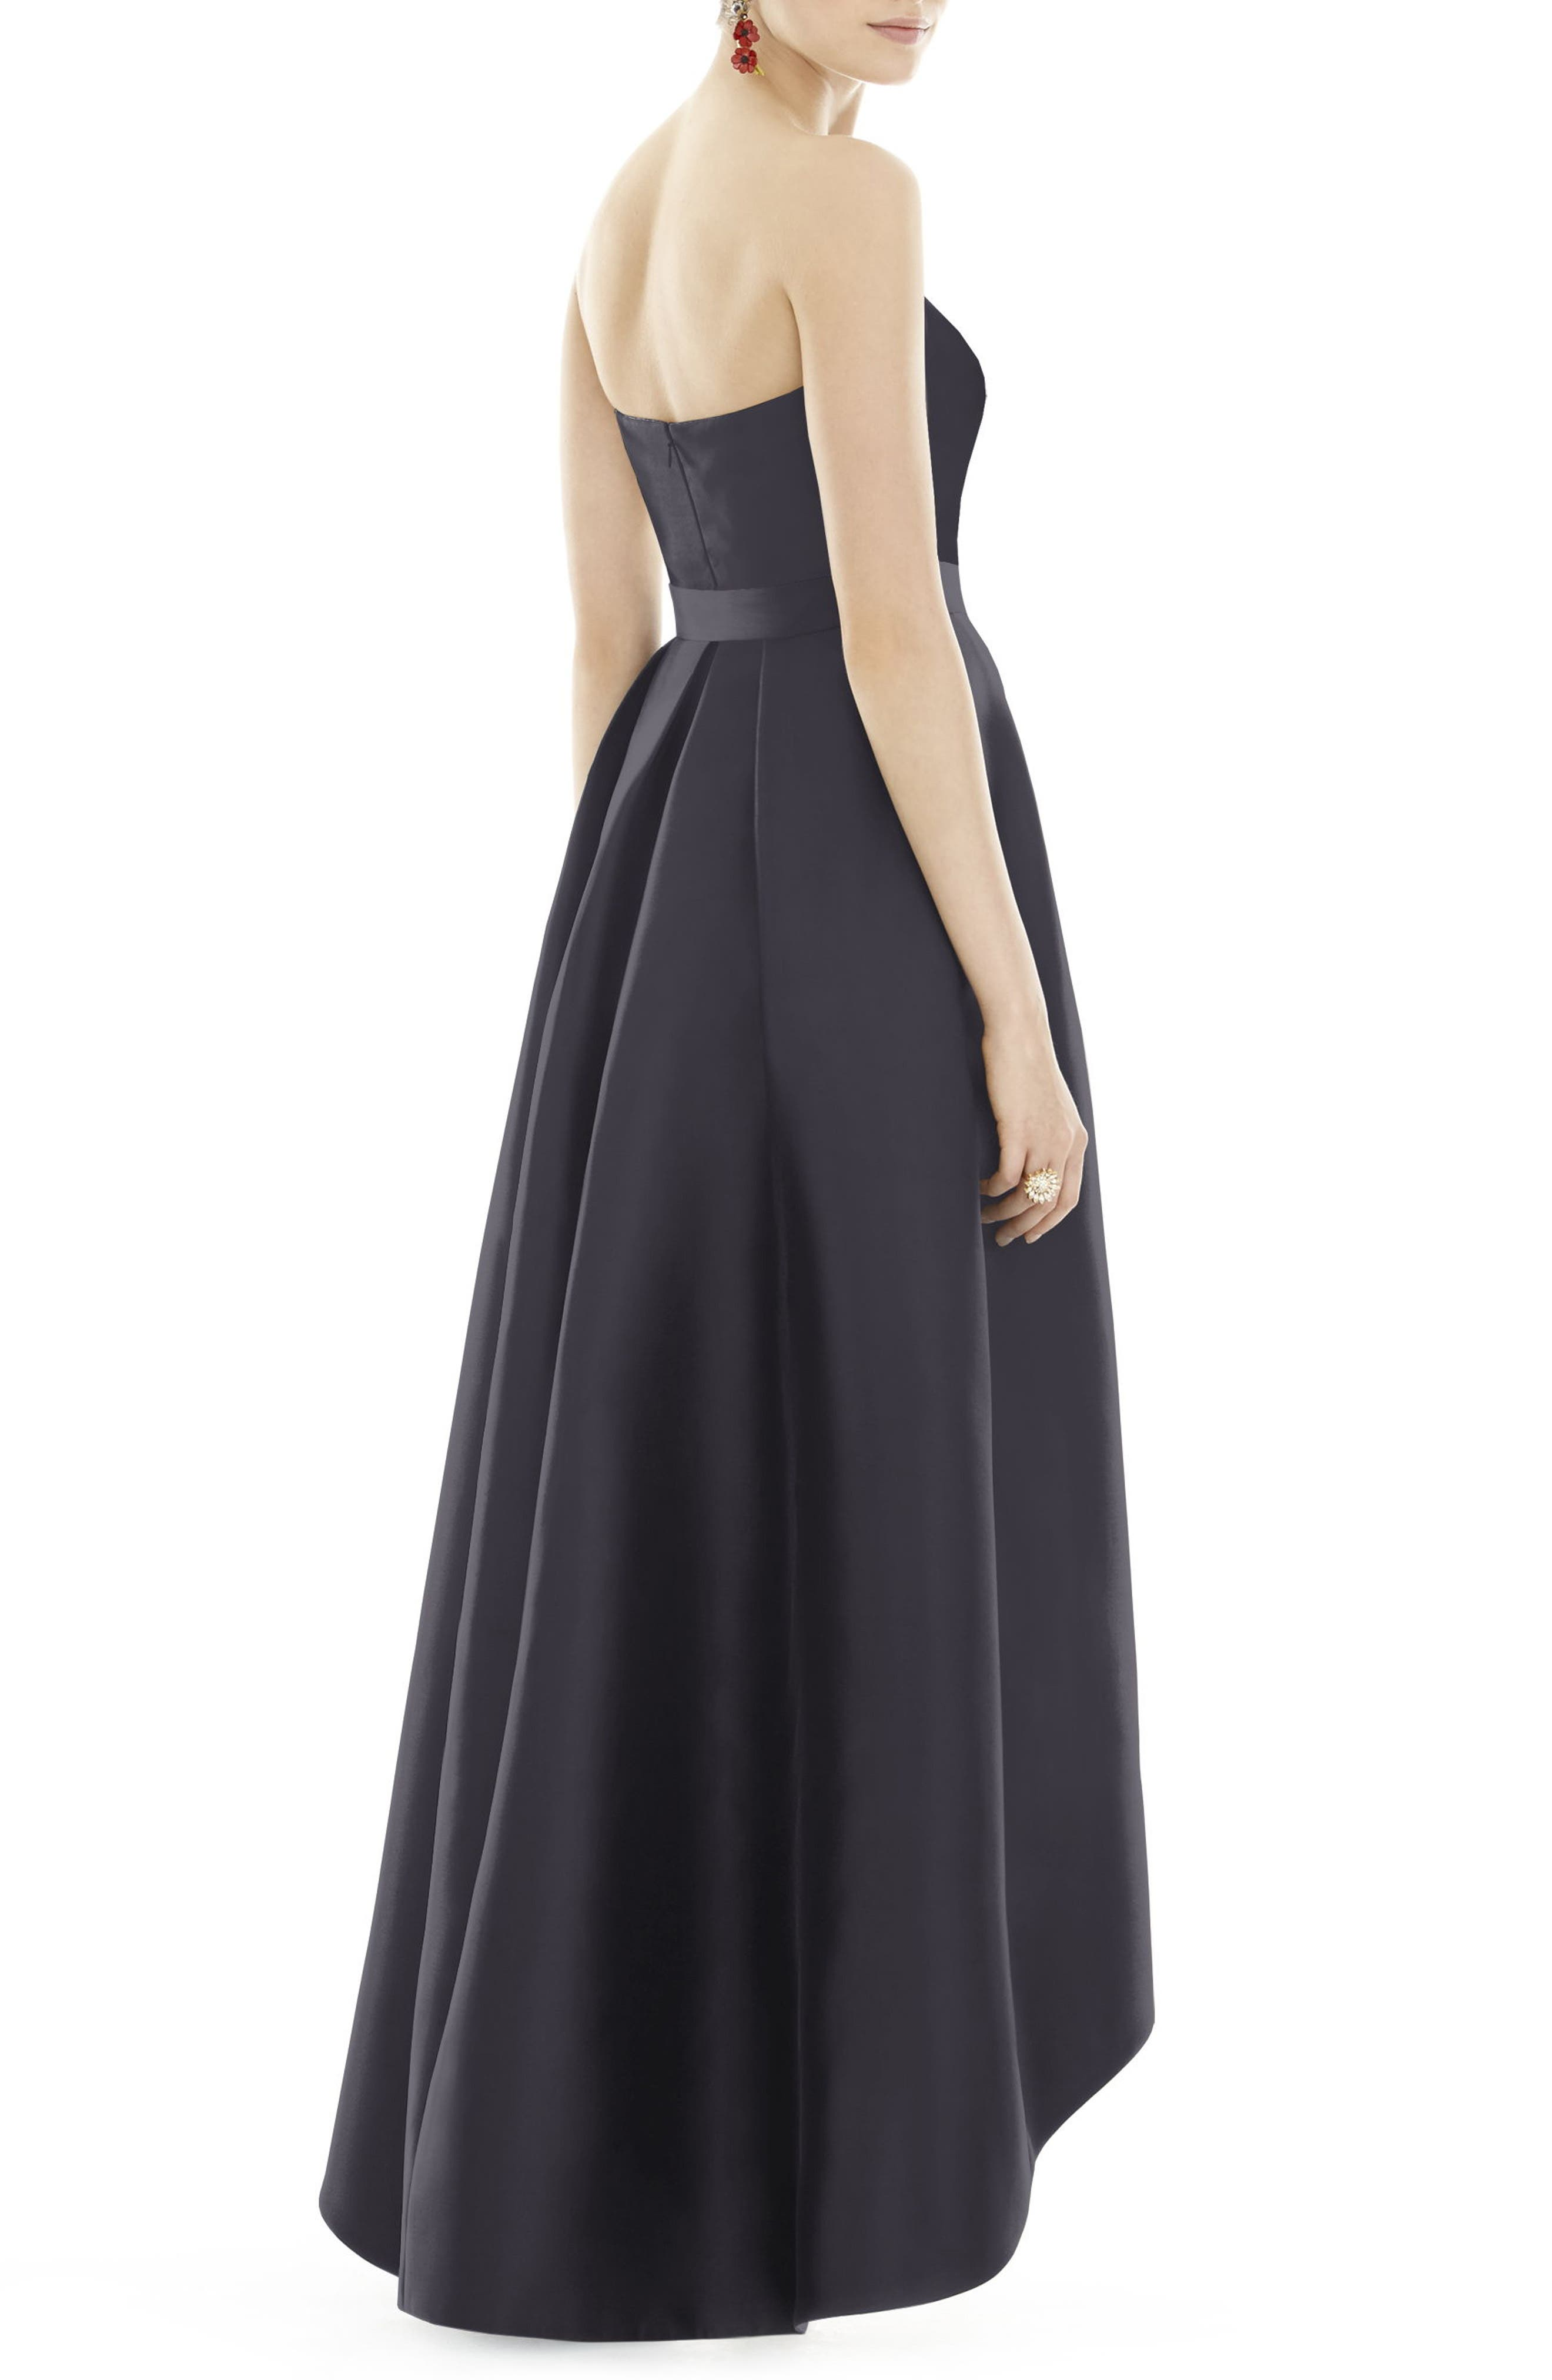 ALFRED SUNG, Strapless High/Low Satin Twill Ballgown, Alternate thumbnail 2, color, ONYX